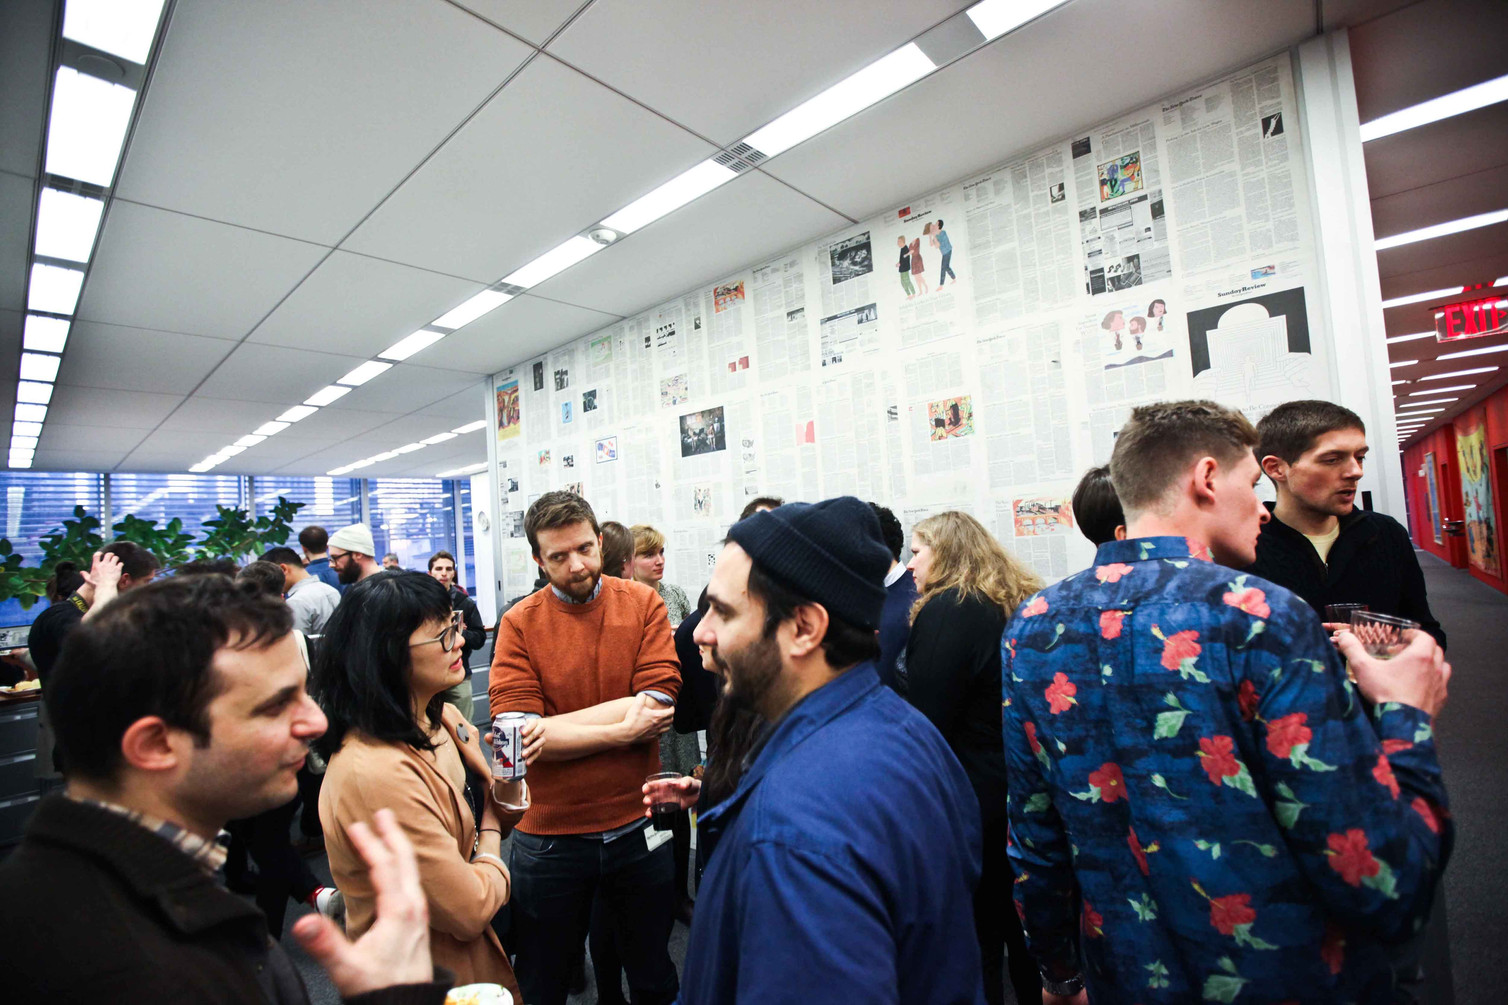 The opening reception at The New York Times' Gallery 7